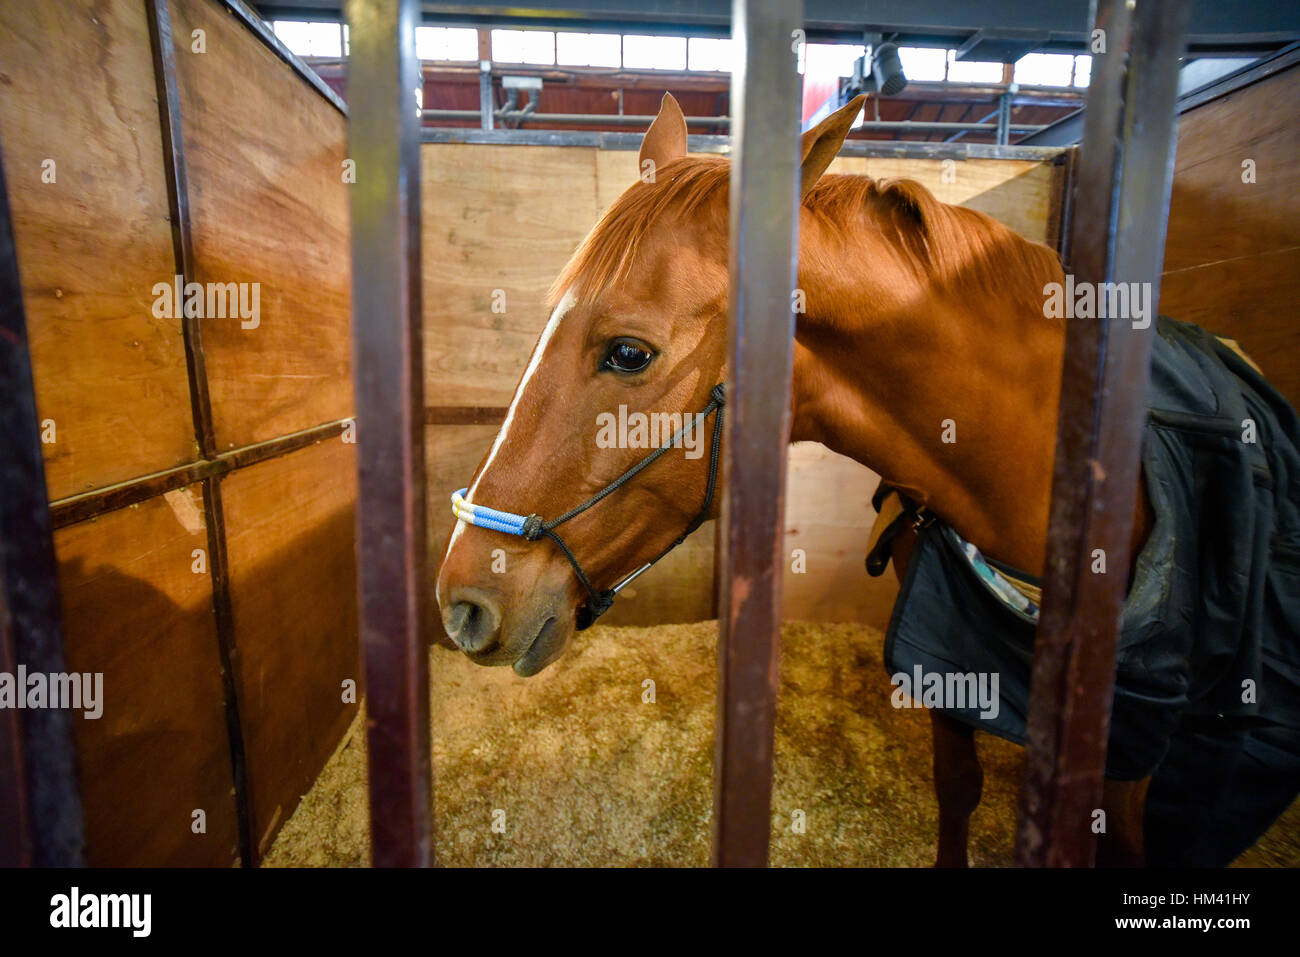 Bay horse covered with a blanket in a stable - Stock Image